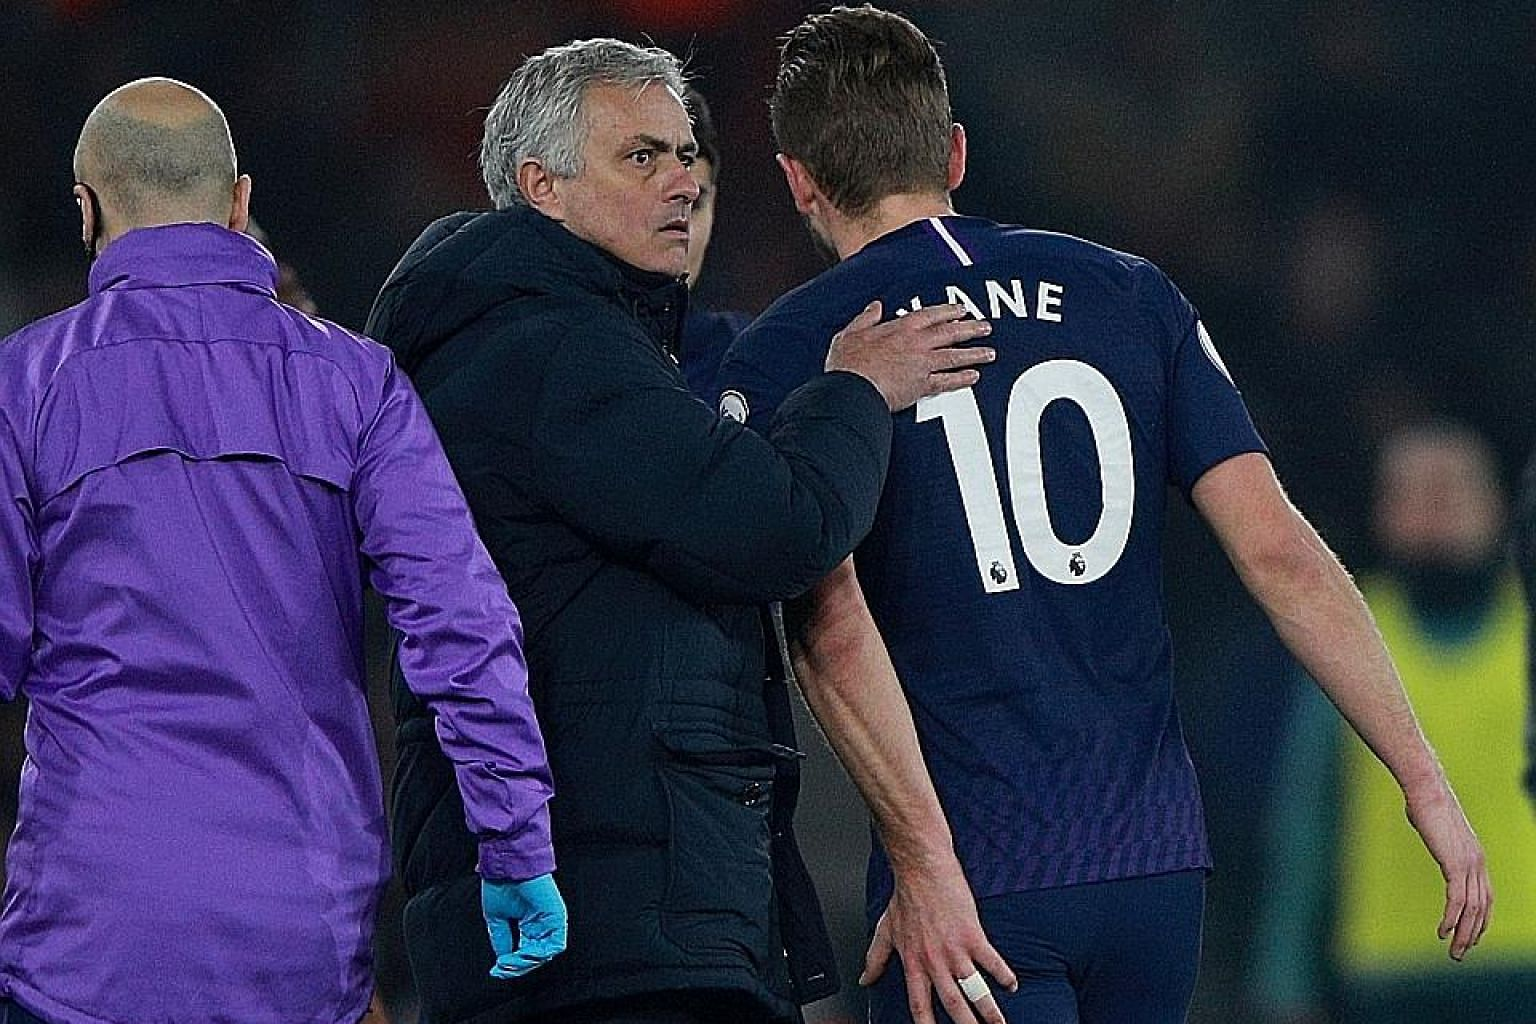 Tottenham Hotspur manager Jose Mourinho patting striker Harry Kane as he goes off injured during the 1-0 Premier League loss at Southampton on Jan 1. Yesterday, the club confirmed Kane had a torn hamstring. PHOTO: REUTERS